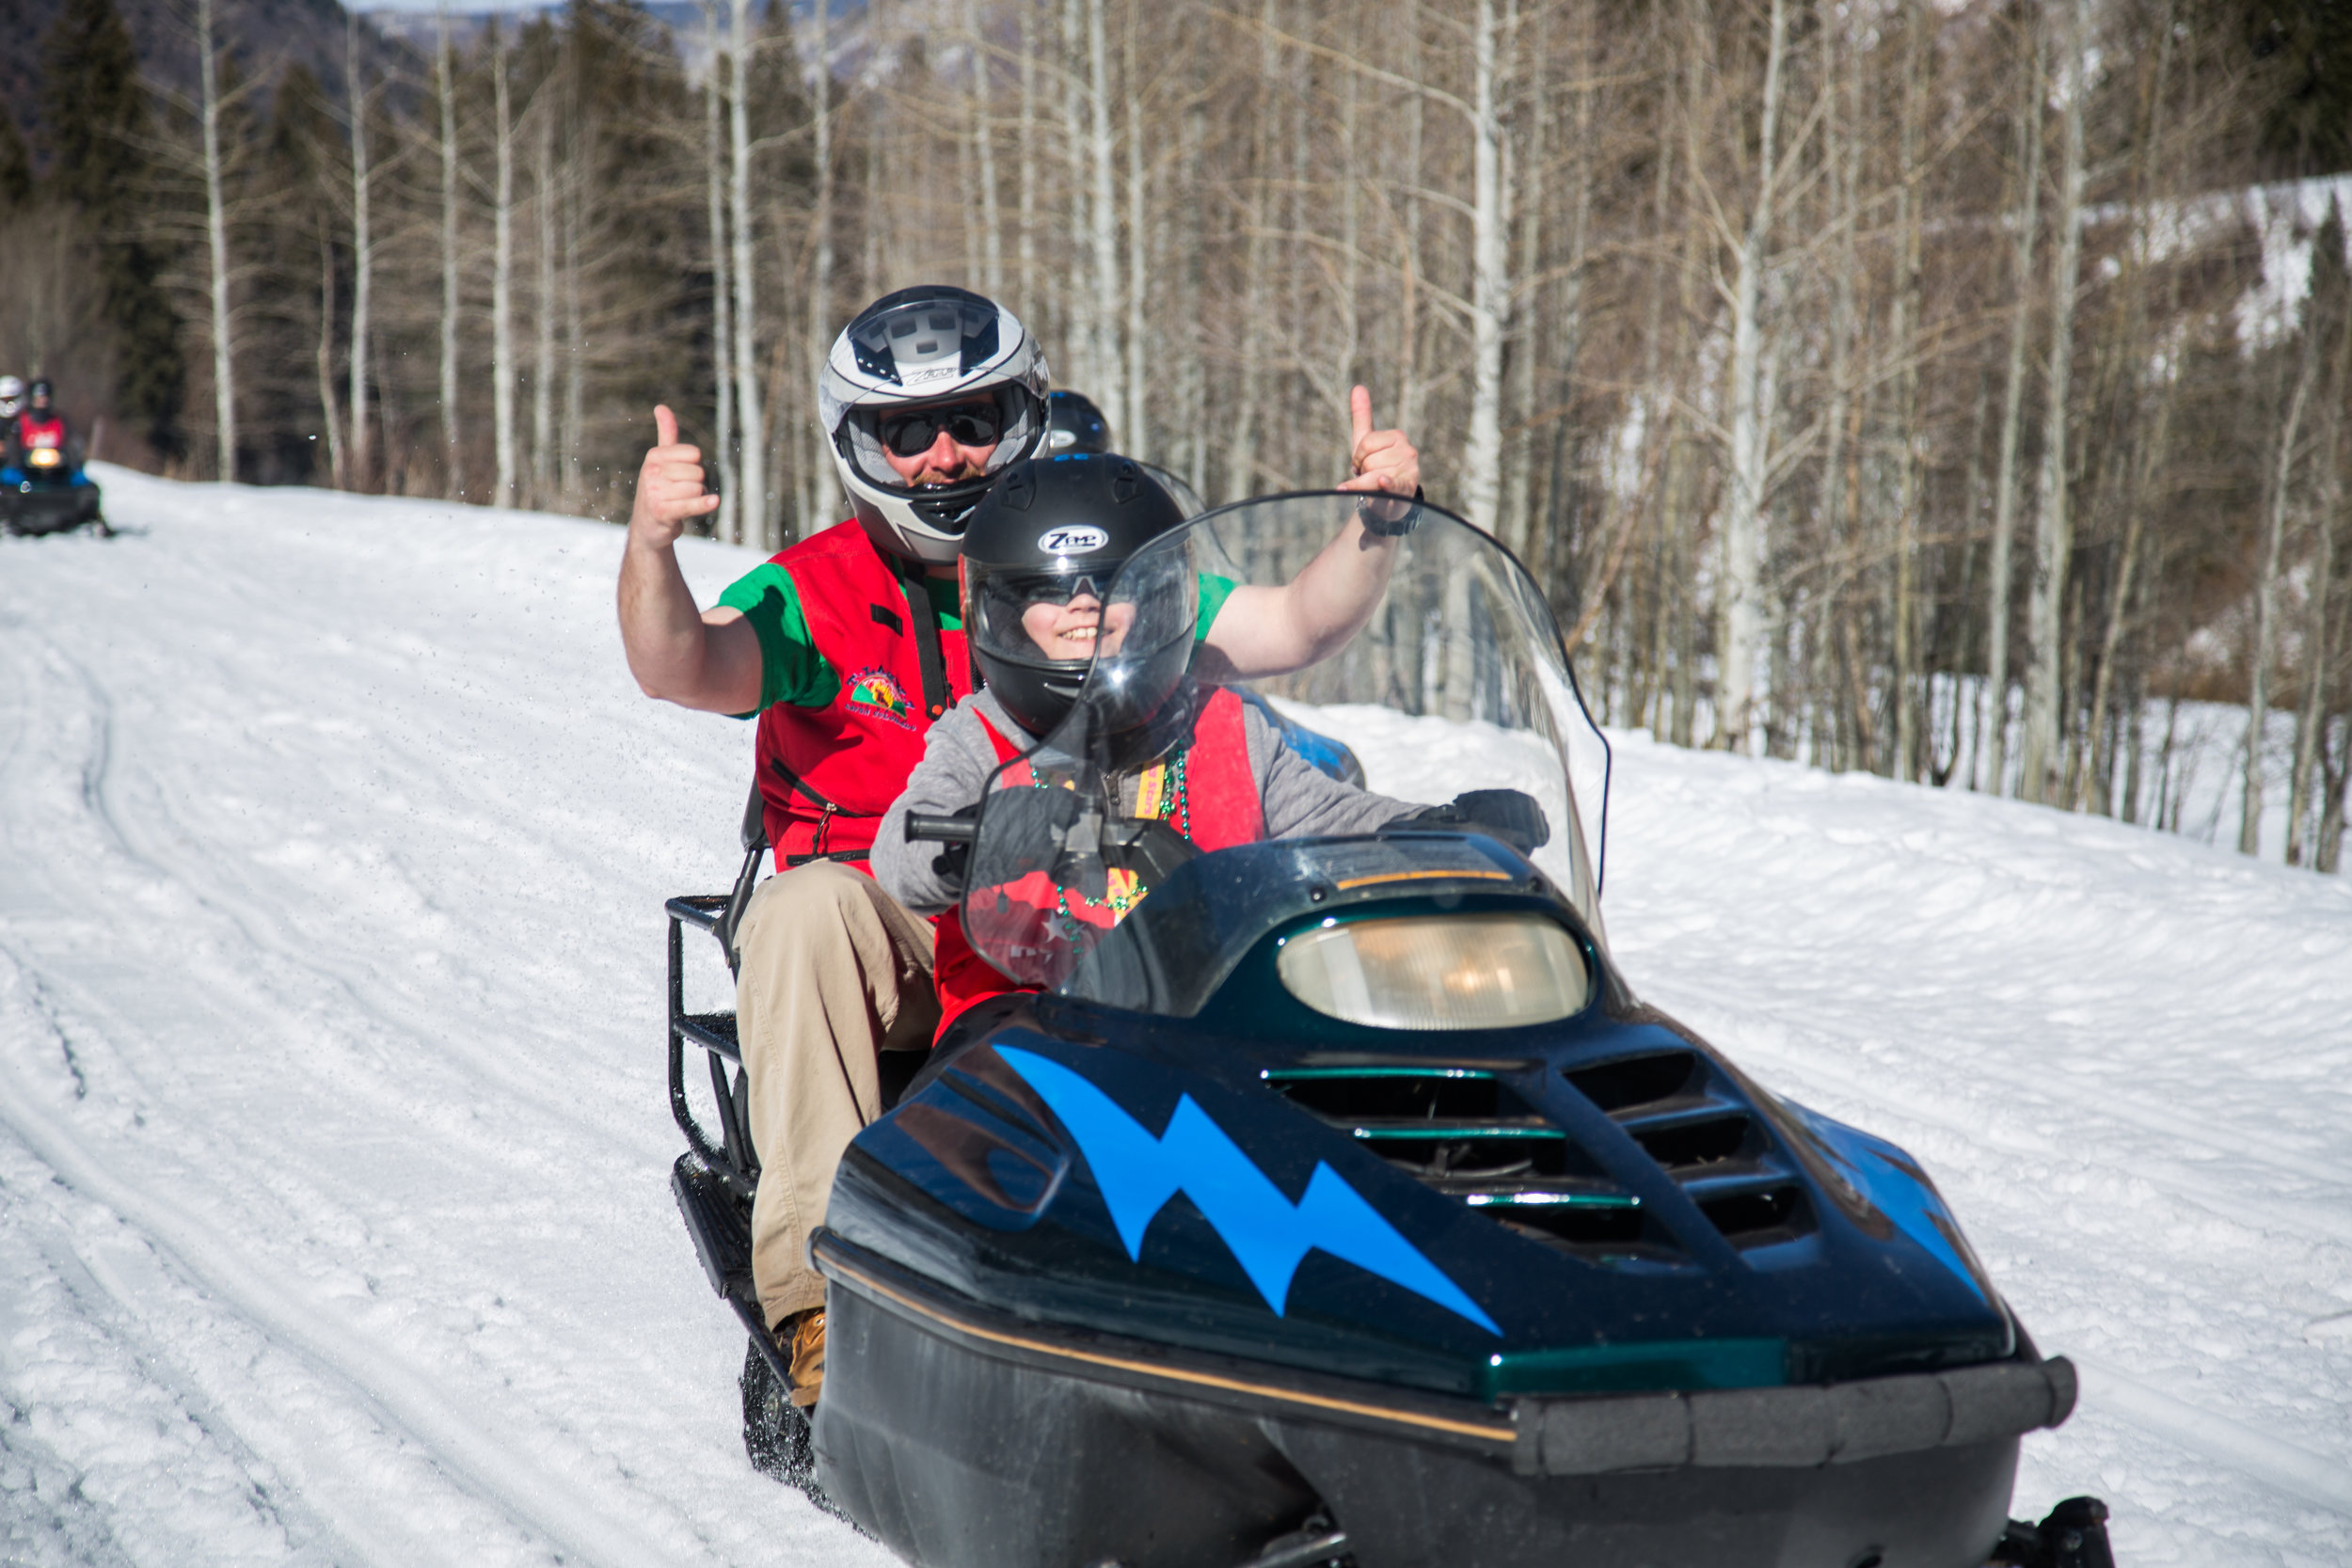 T Lazy 7 Ranch in Aspen provides snowmobile rides for the kids every year!